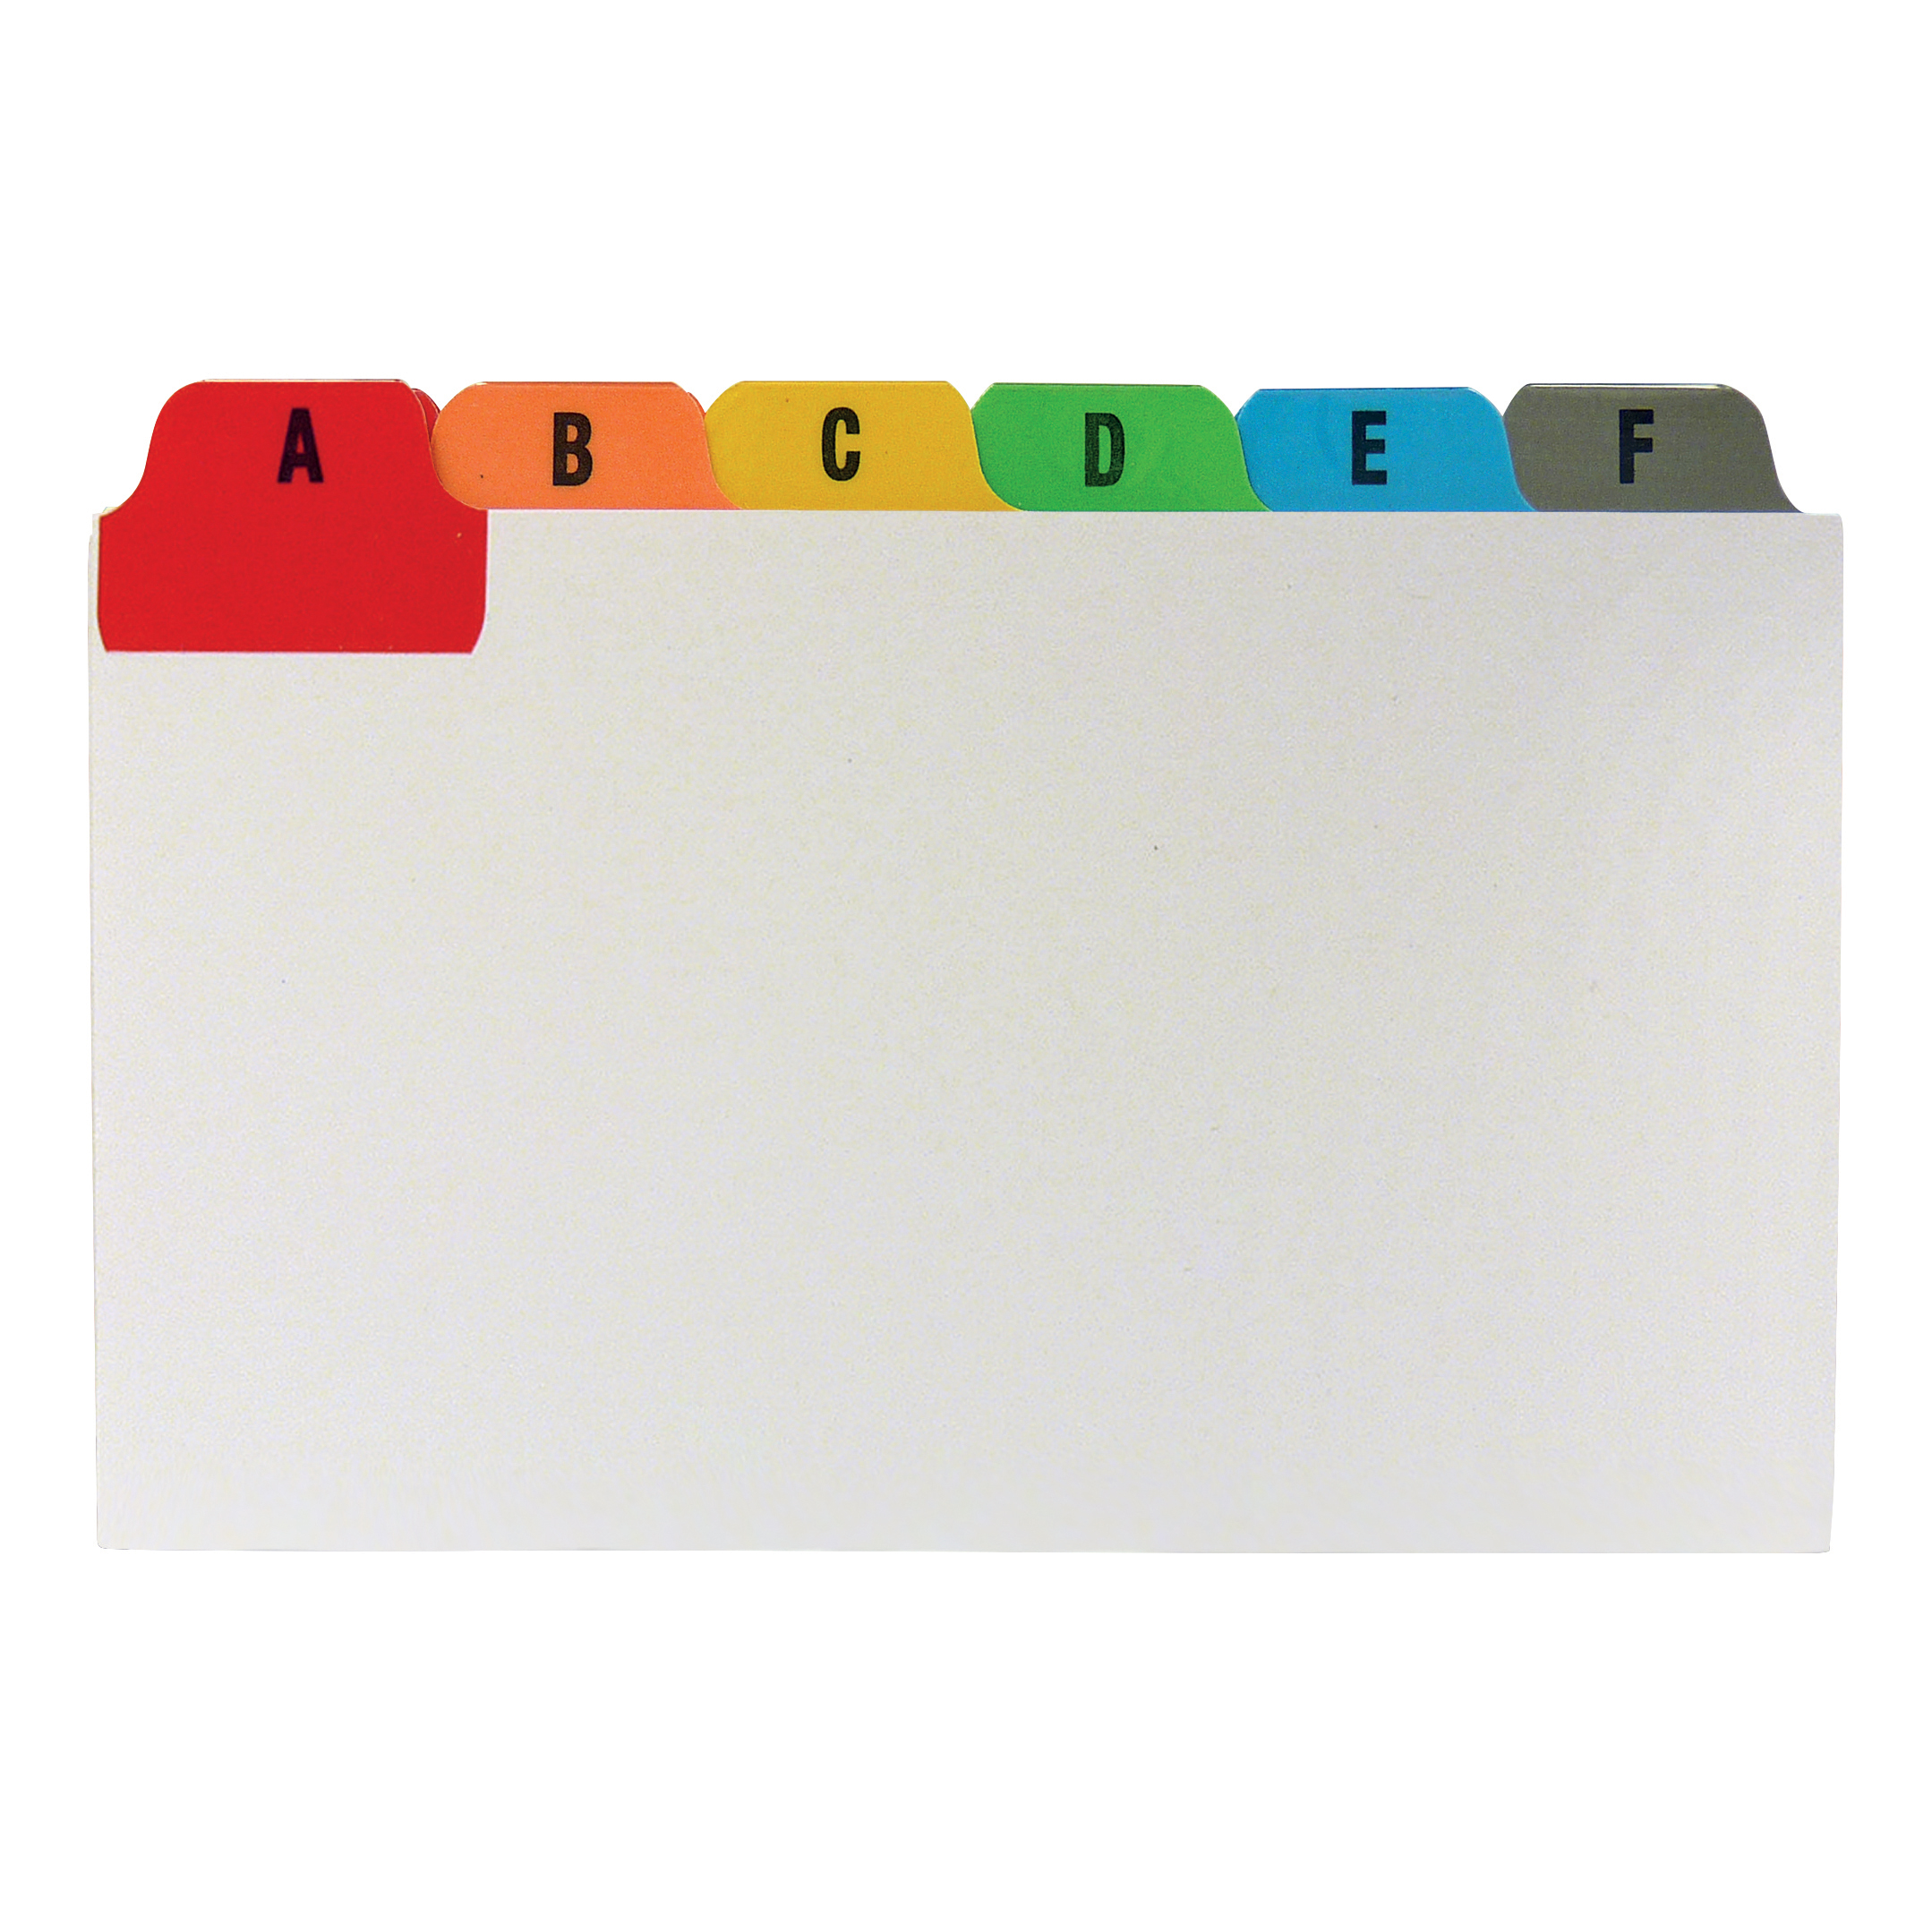 Guide Cards 5 Star Office Guide Card Set A-Z Reinforced 5x3in 127x76mm White with Tabs Multicoloured